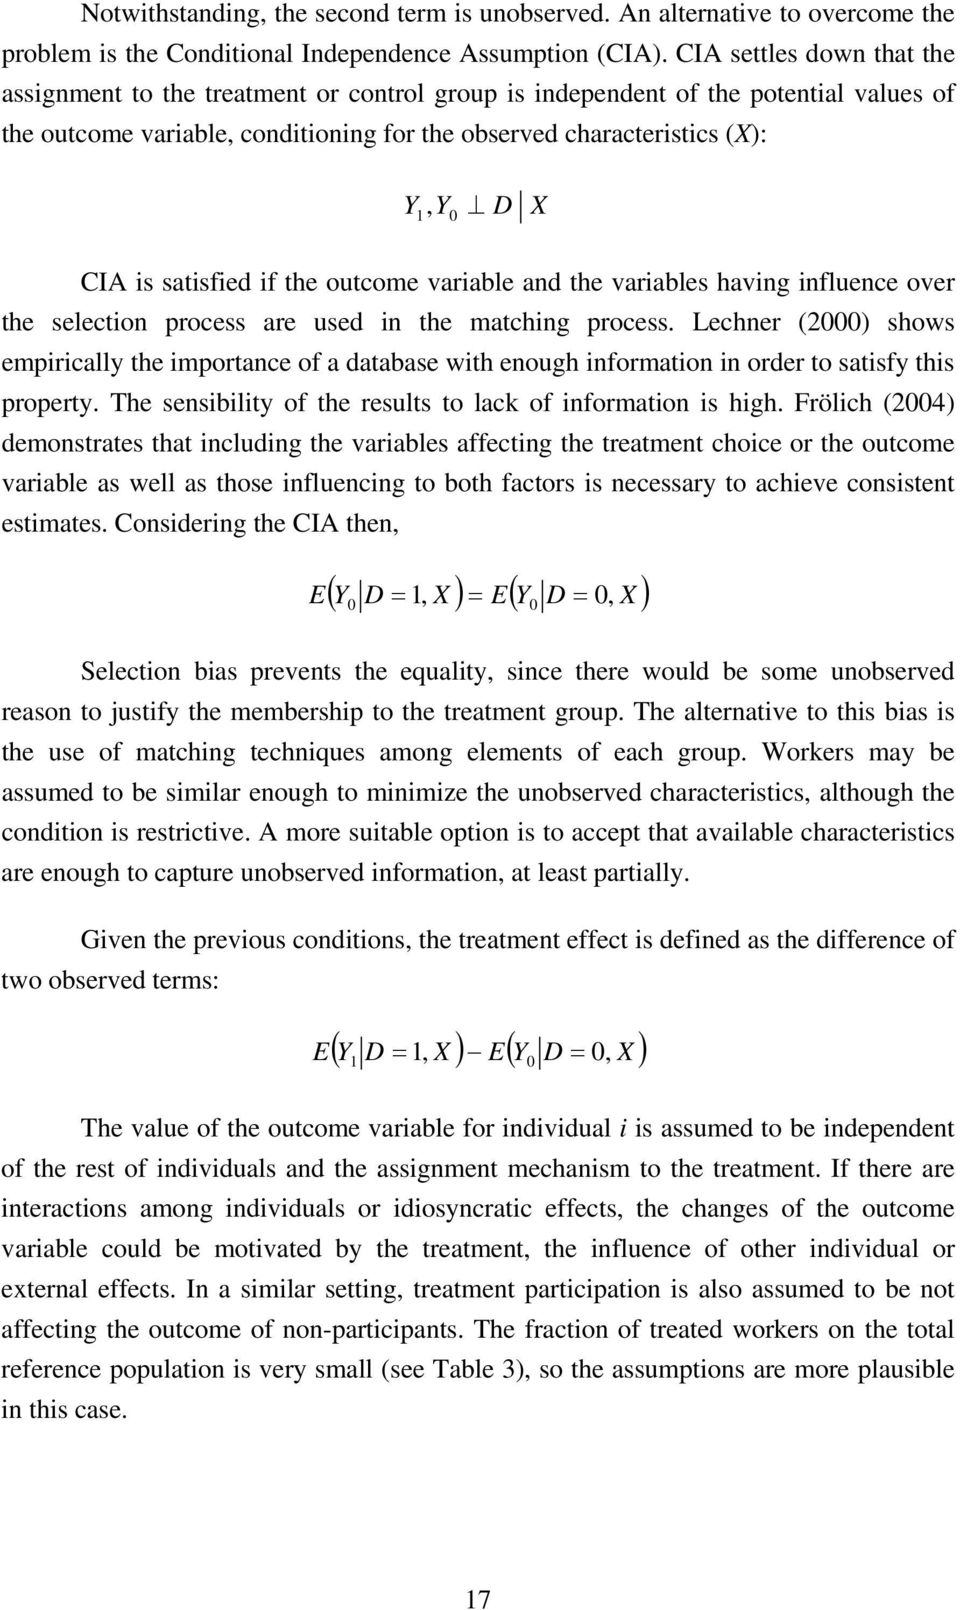 CIA is satisfied if the outcome variable and the variables having influence over the selection process are used in the matching process.